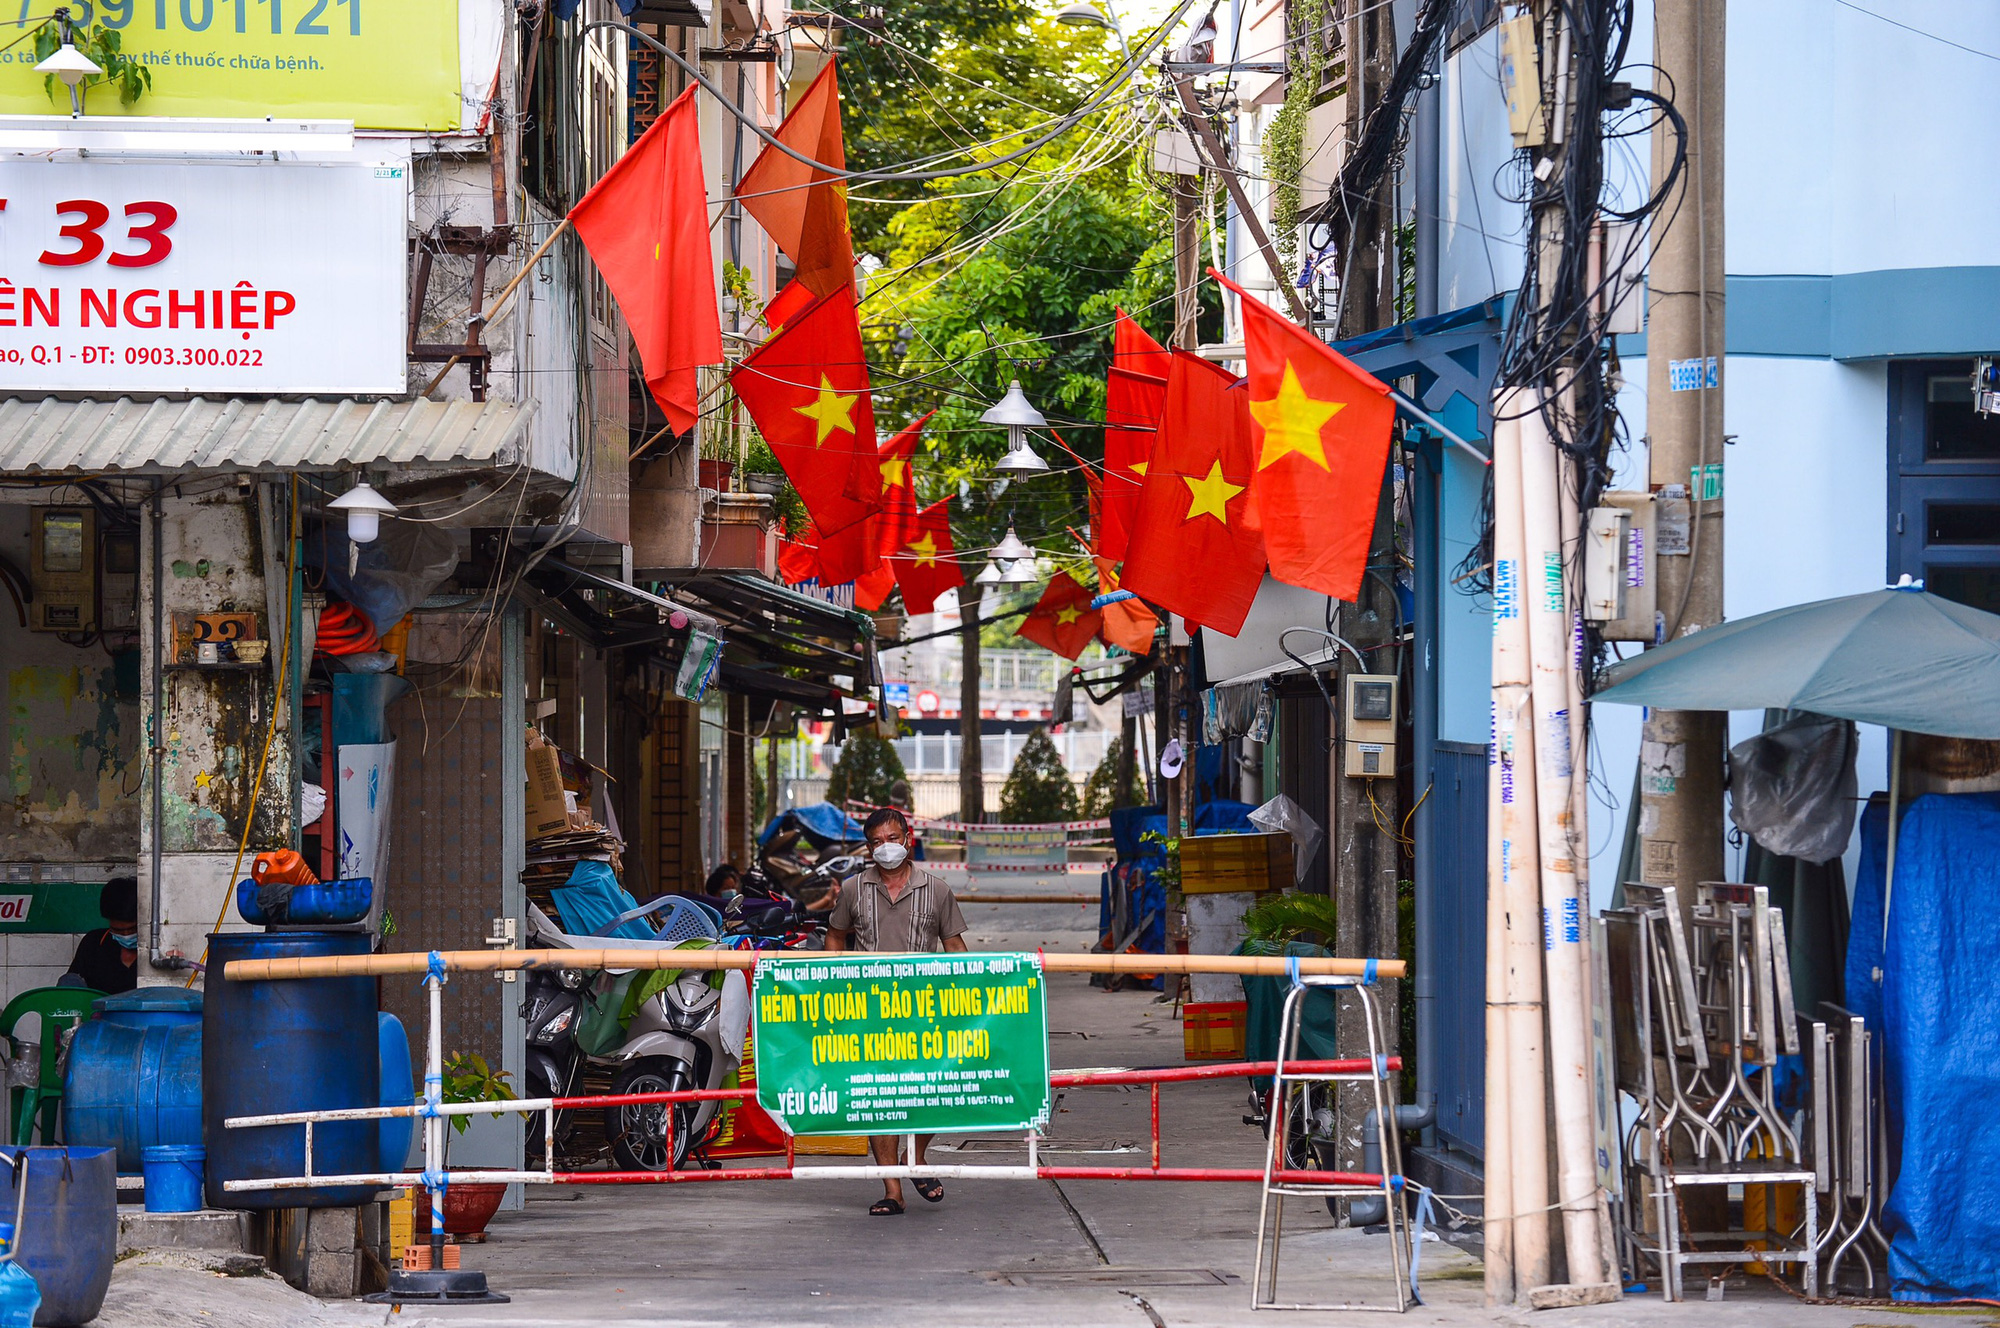 Ho Chi Minh City extends shelter-in-place mandate to mid-September